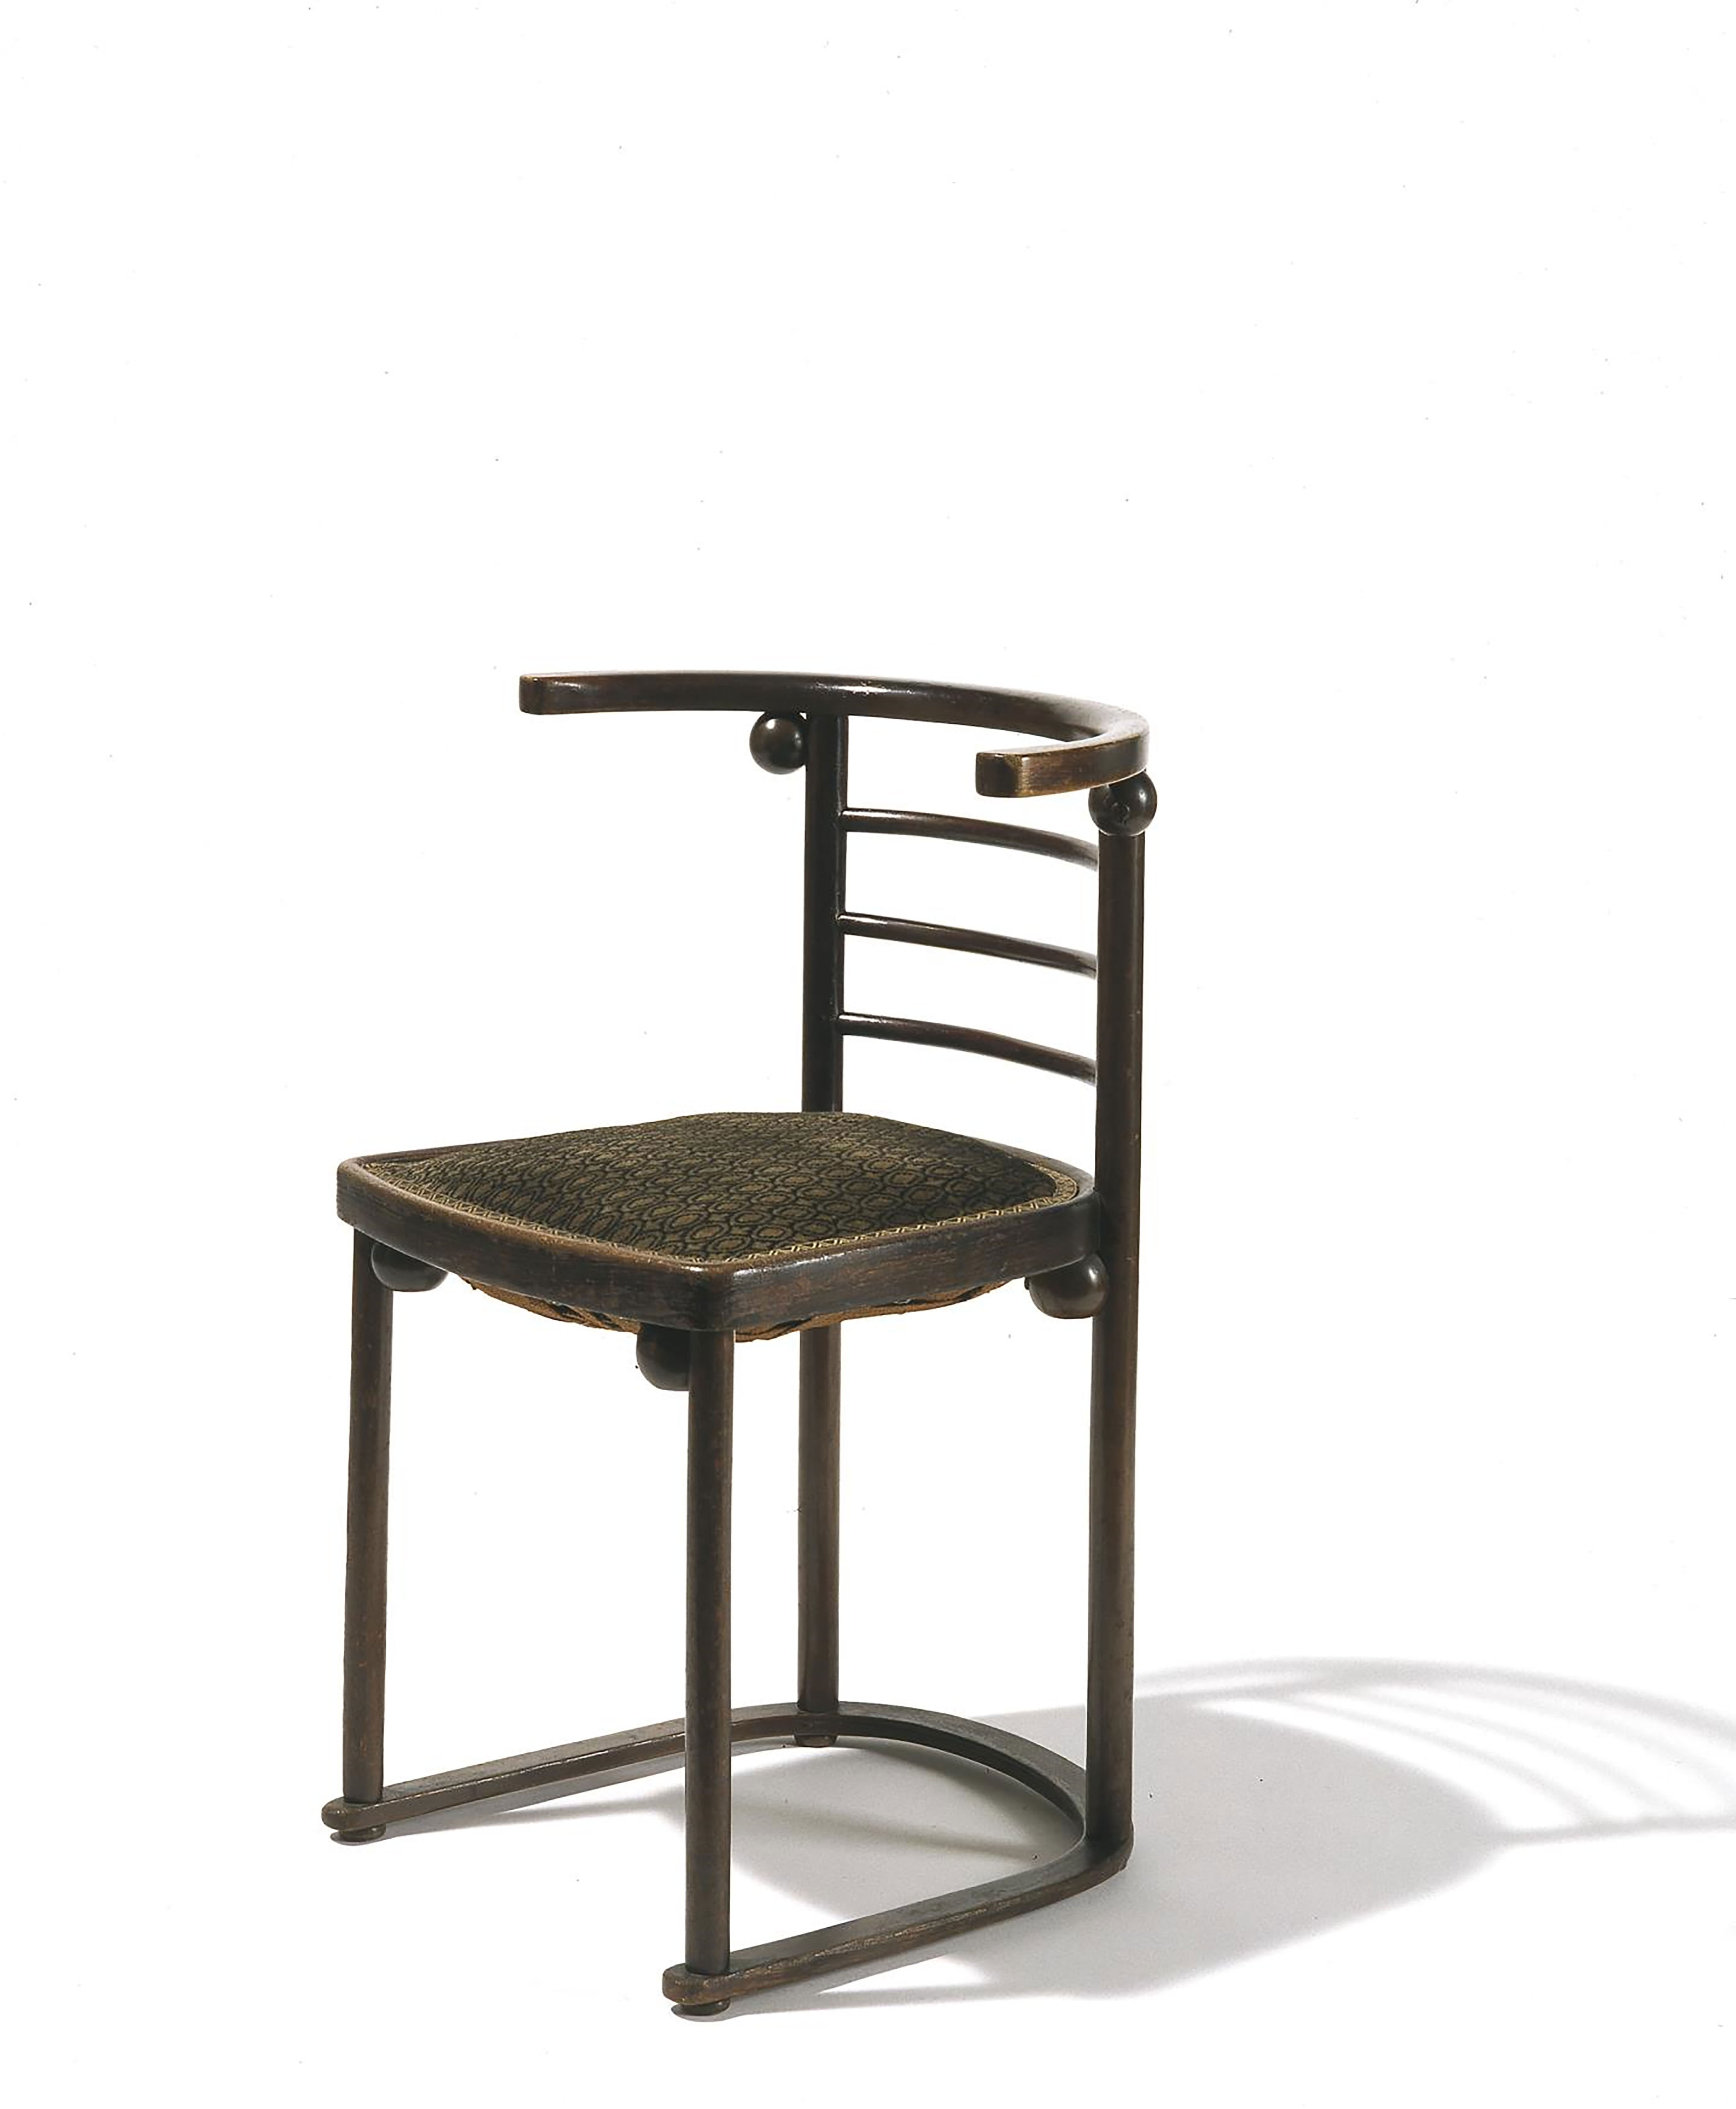 <BODY><div>Josef Hoffmann, Fauteuil from Cabaret Fledermaus, chair, model no. 728, J. & J. Kohn, bentwood, 1907</div><div>© MAK/Georg Mayer</div><div> </div></BODY>